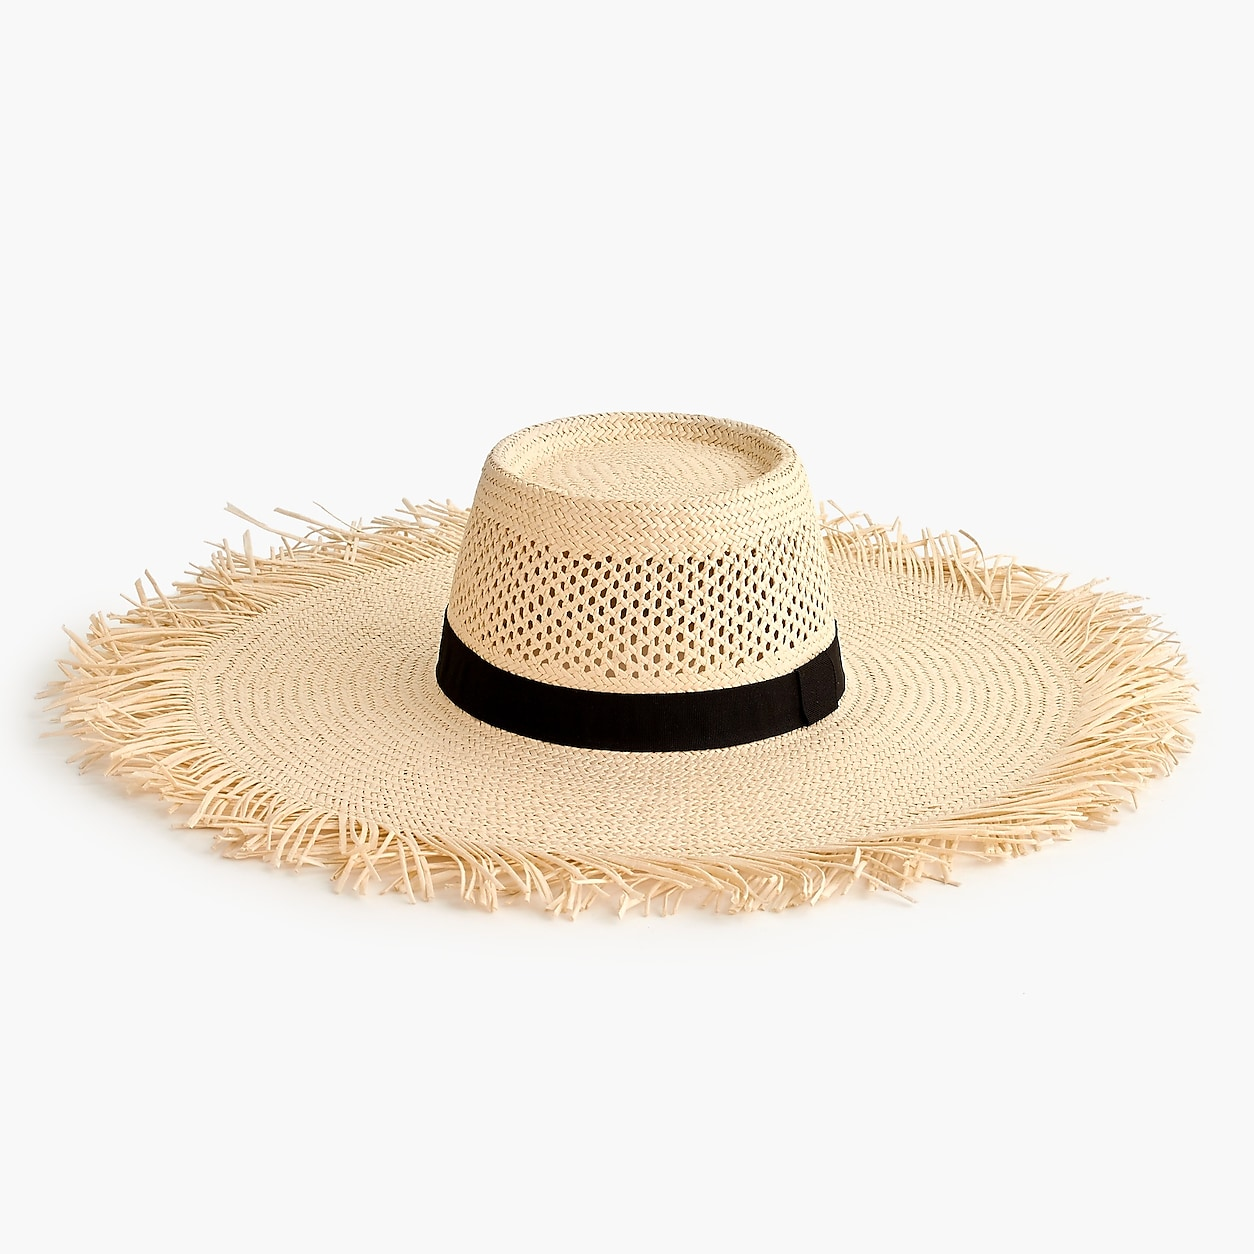 f21e3d9e Wide Brim Straw Hat With Fringe   Products   Hats, Women's ...